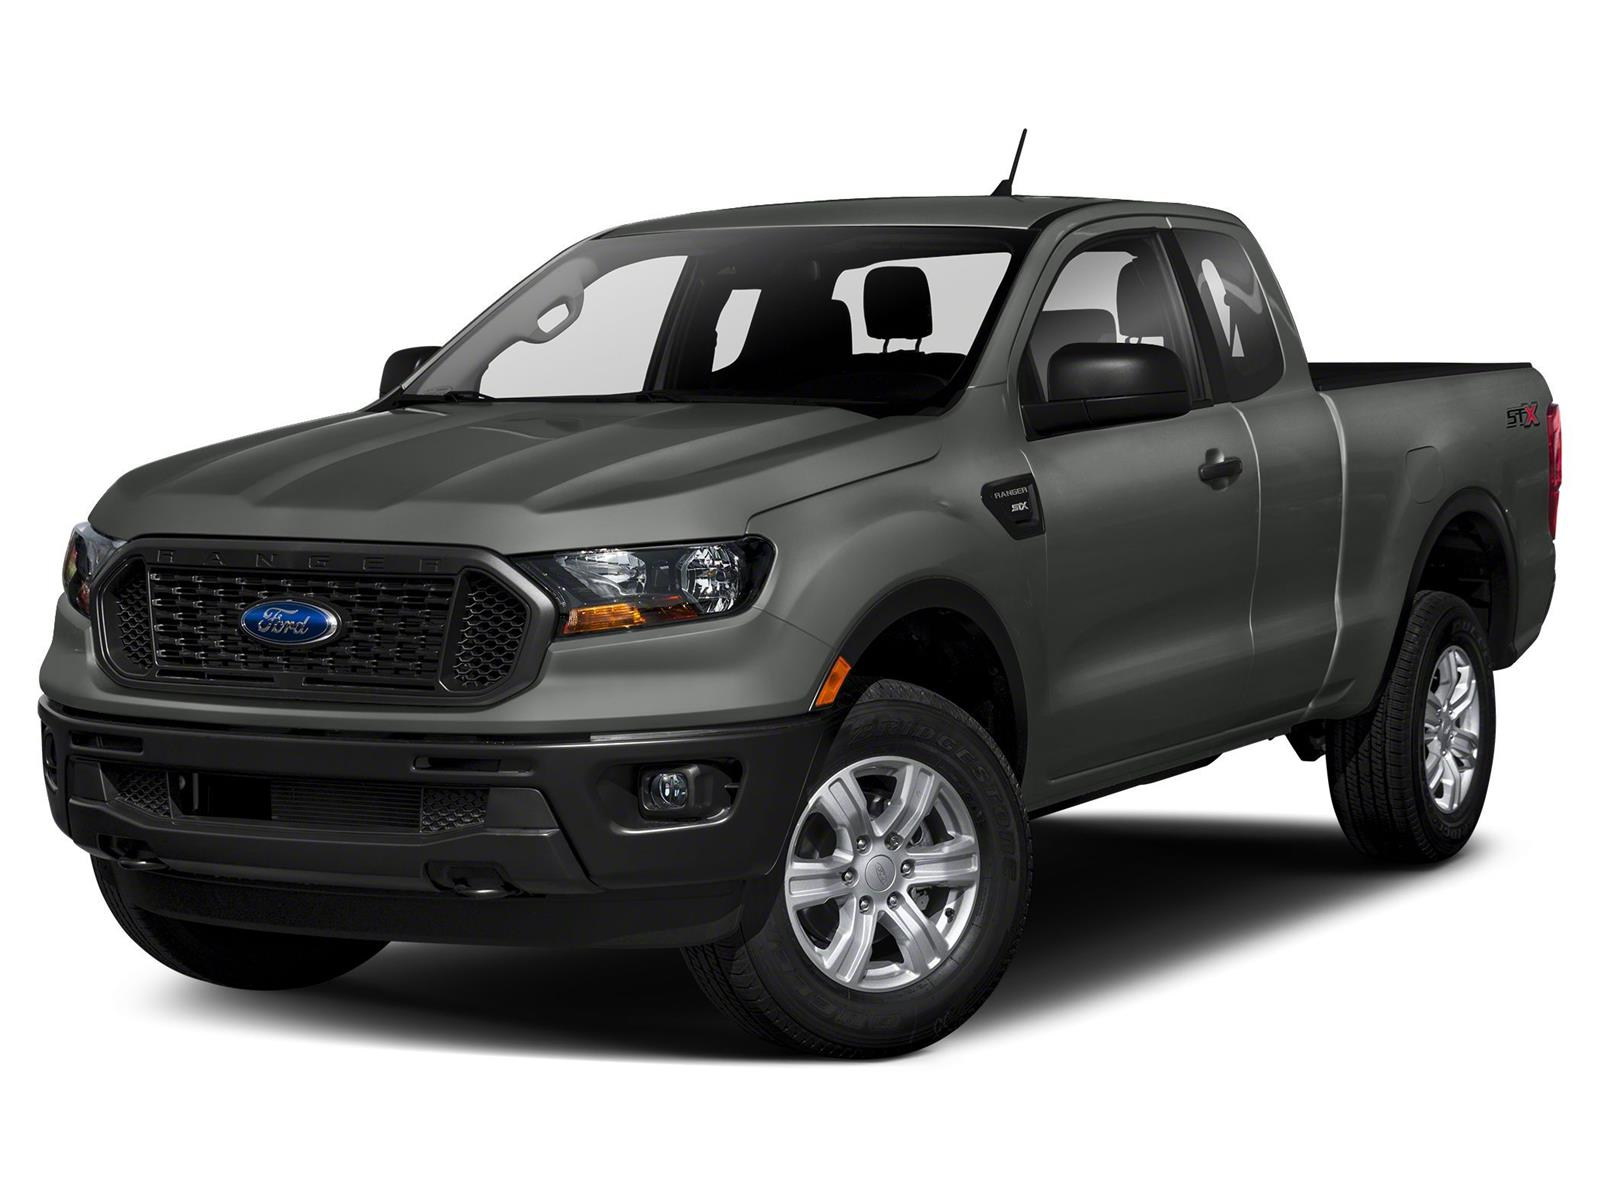 2020 Ranger Super Cab 4x4, Pickup #88097 - photo 1